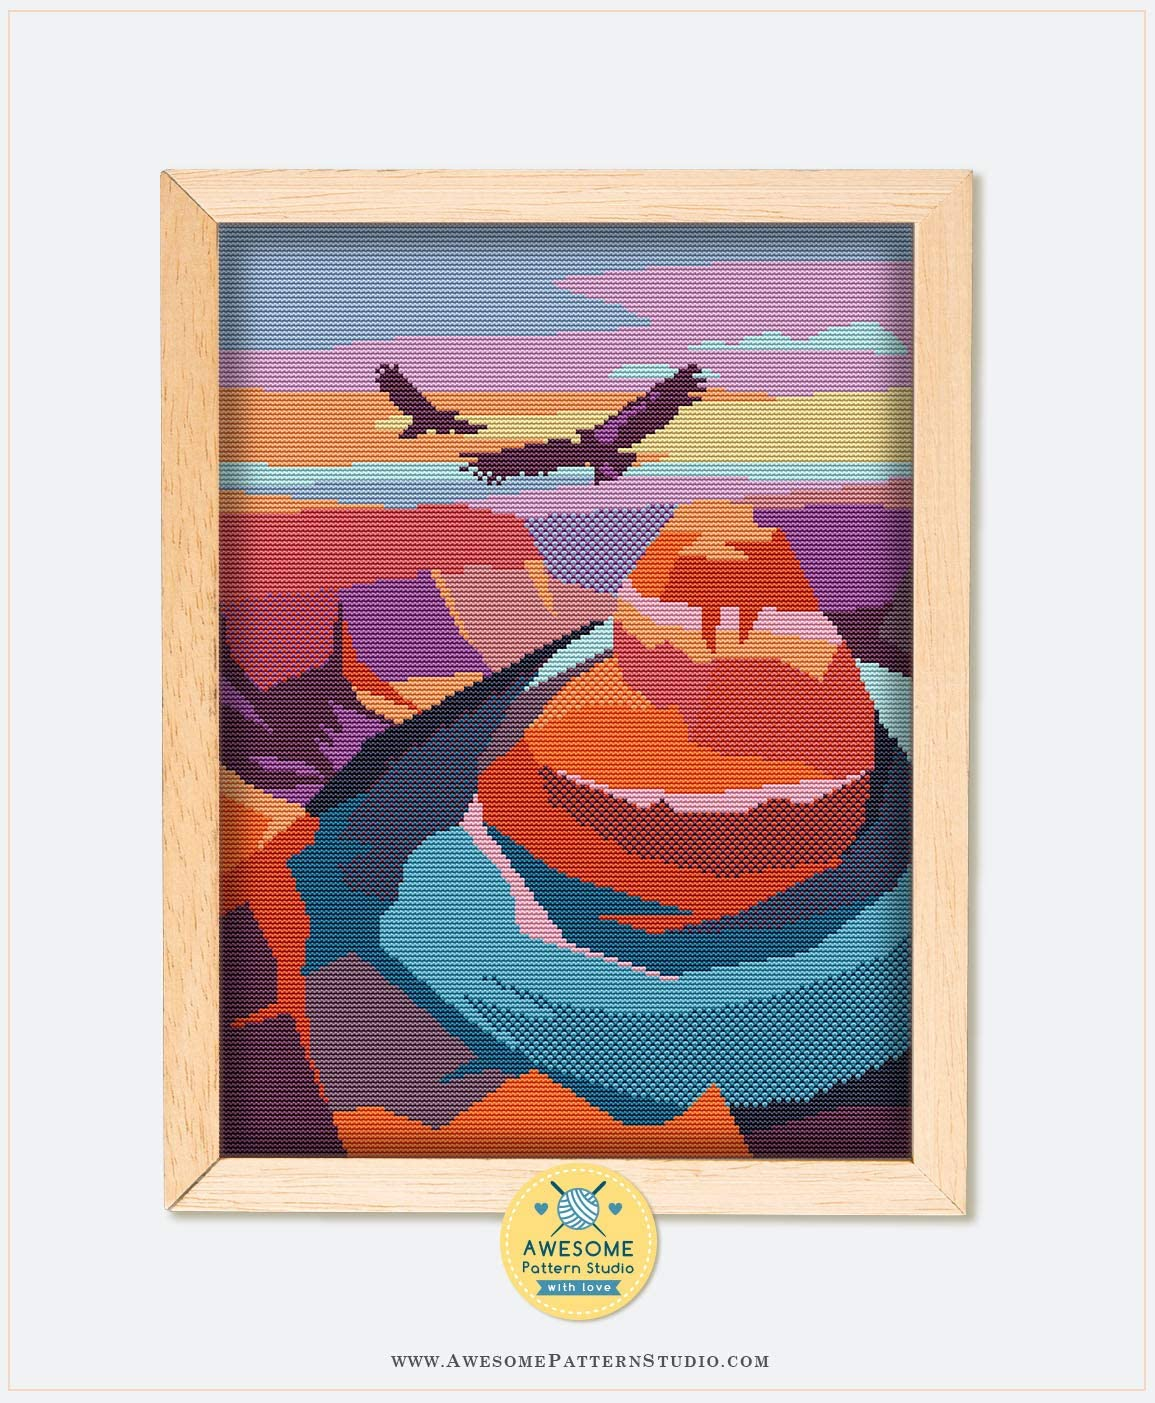 Grand Canyon National Park K334 Counted Cross Stitch KIT#2 Embroidery Pattern Kit Needles Threads Fabrick and 4 Printed Color Schemes Inside